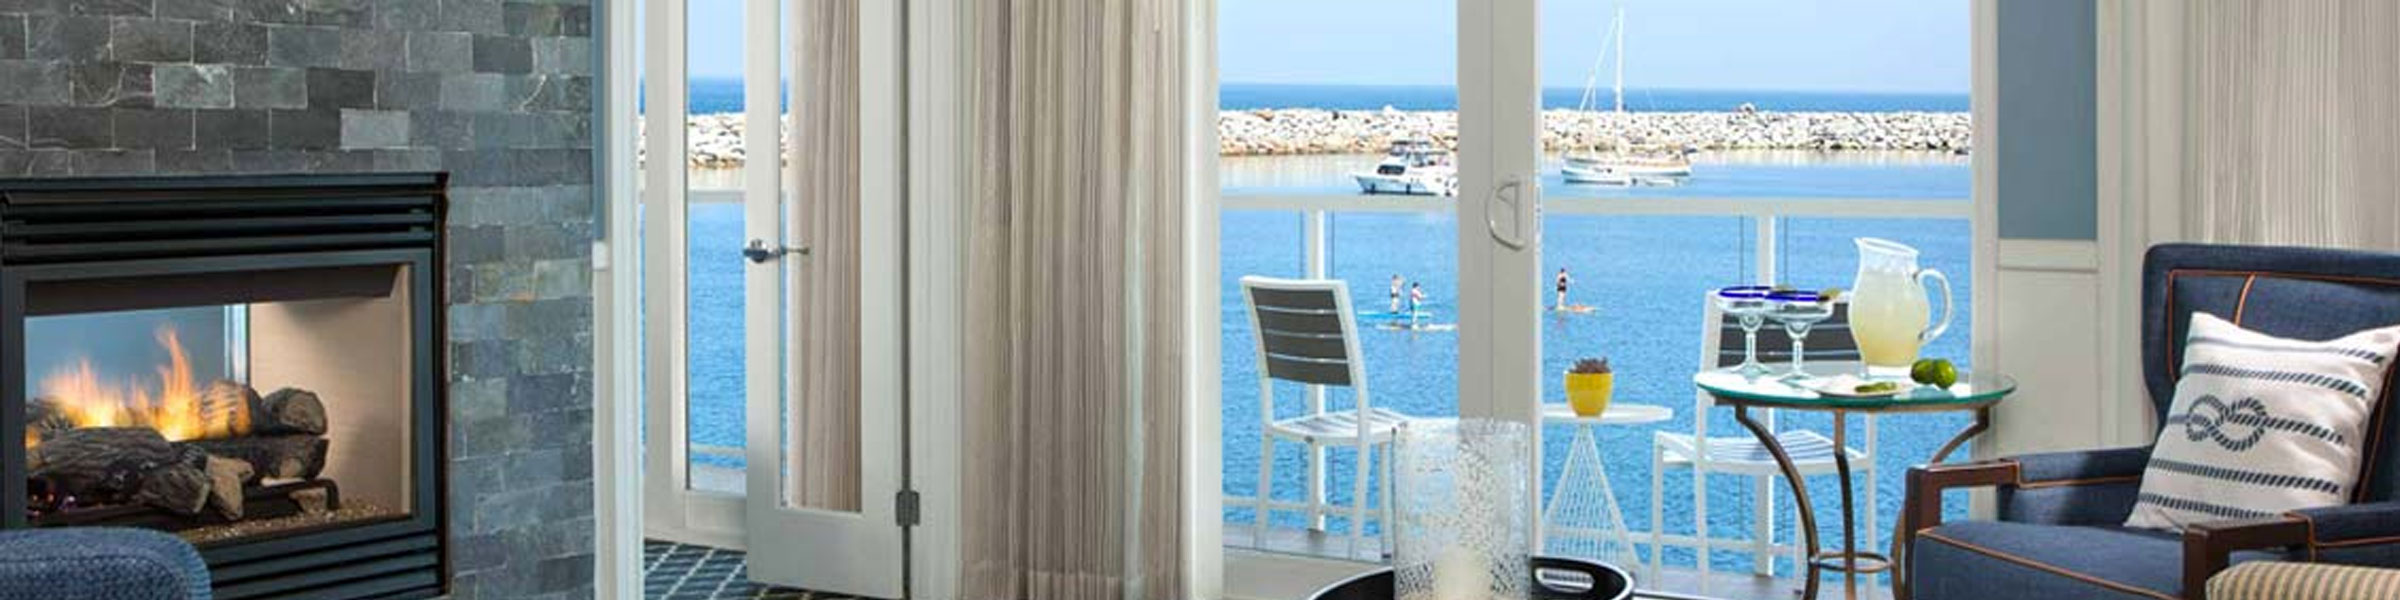 Premier King Guestroom with ocean view